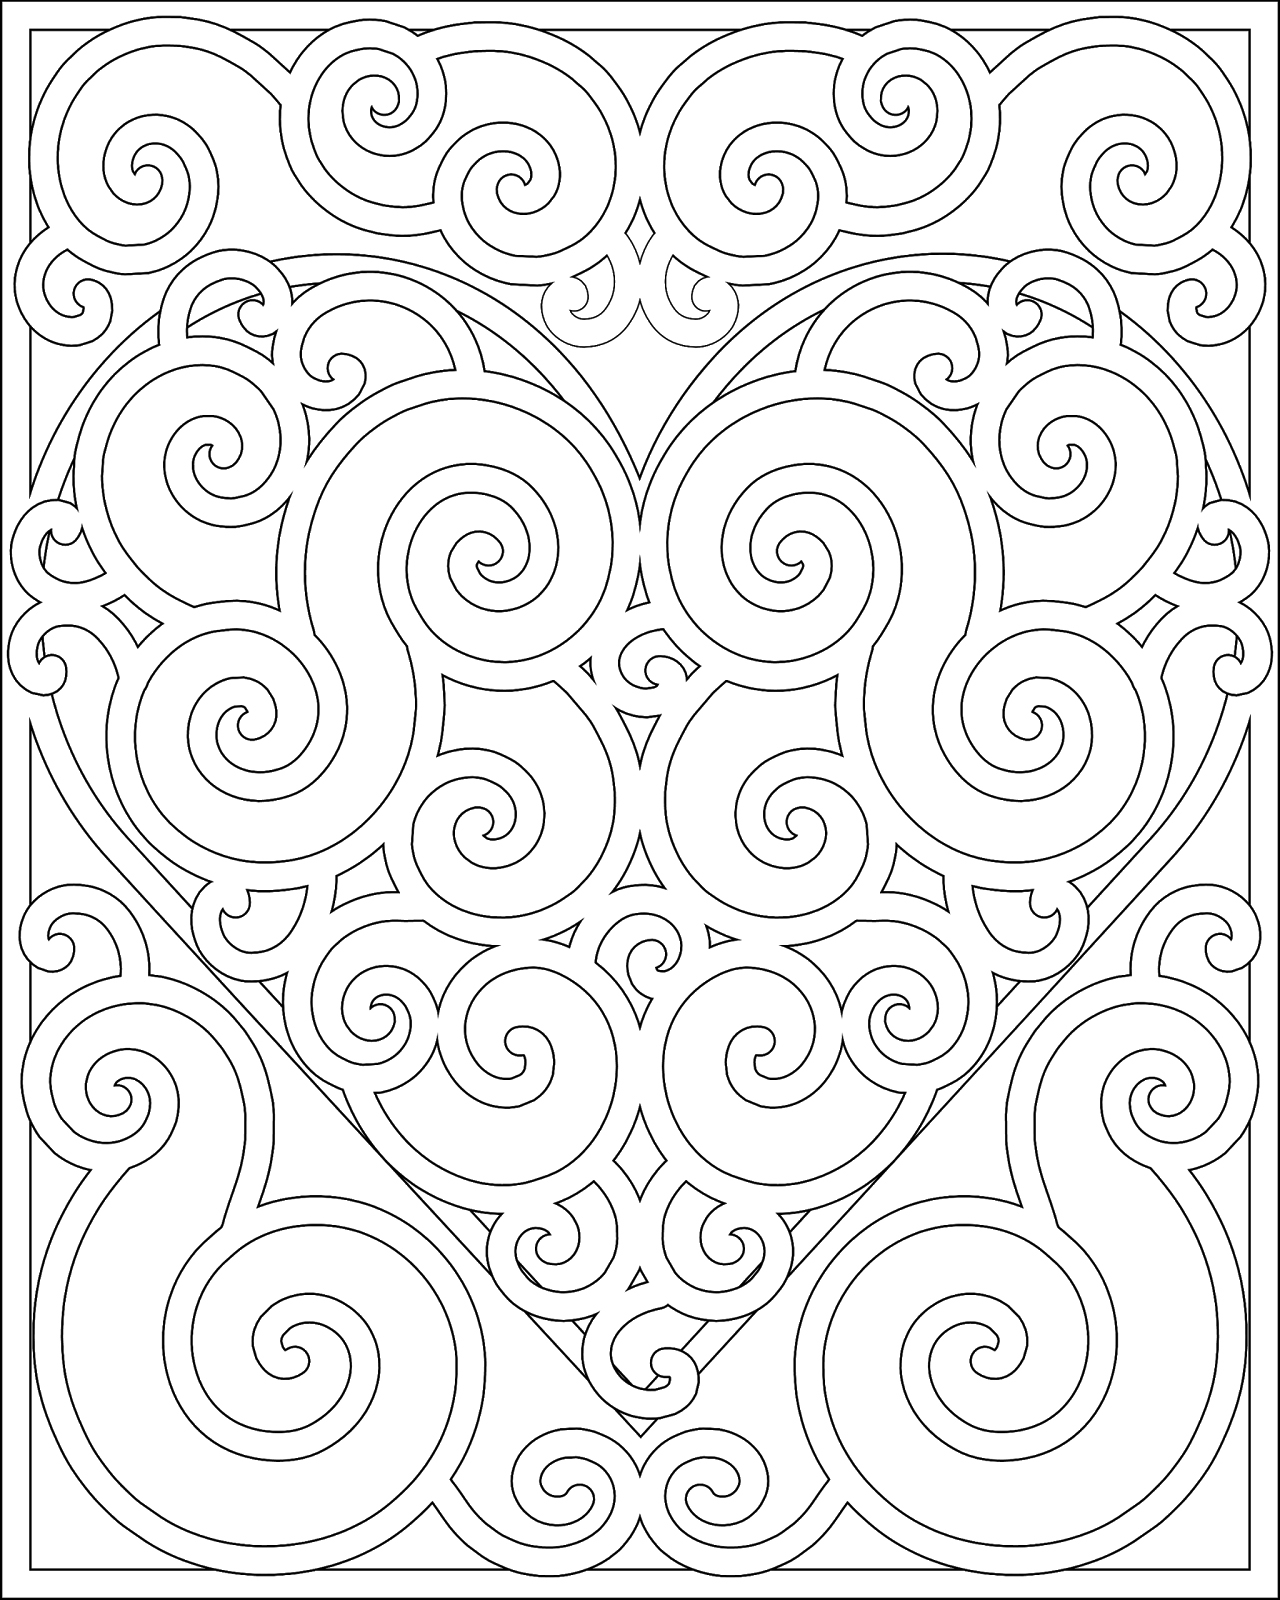 printable patterns to colour floral pattern coloring page free printable coloring pages colour printable patterns to